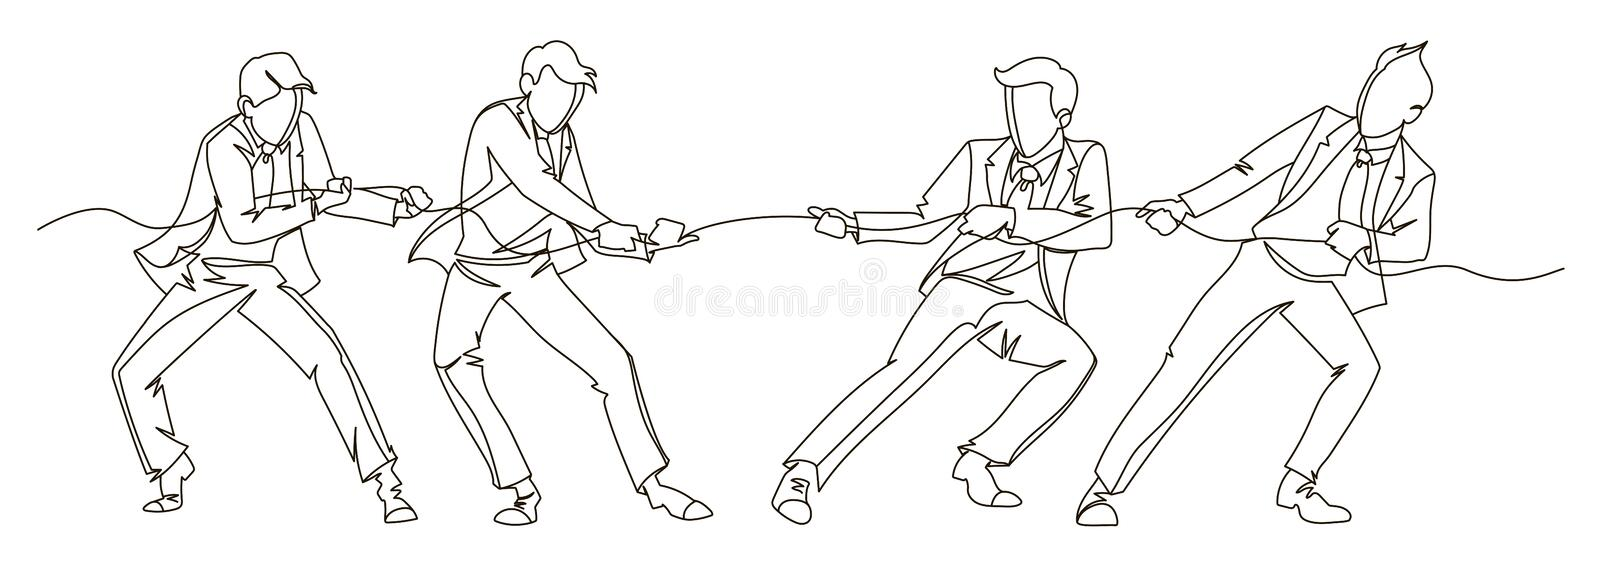 Businessman Pulling the Rope Continuous Line Art. Business Teamwork Linear Concept. Silhouette People Competition vector illustration